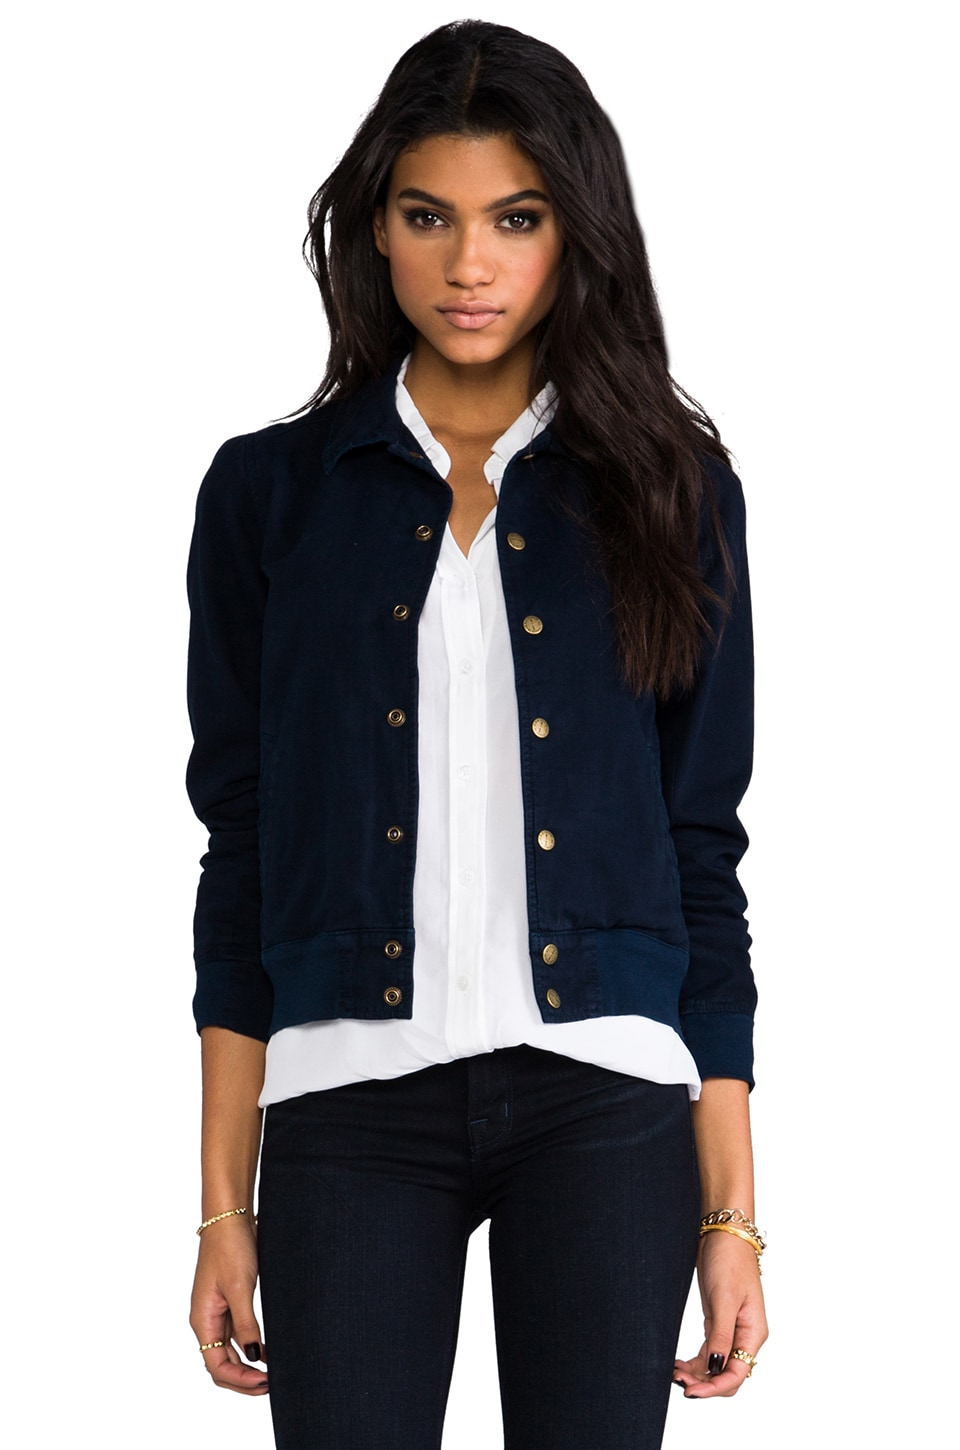 Current/Elliott EXCLUSIVITÉ Blouson Campus X The Blonde Salad en Marine